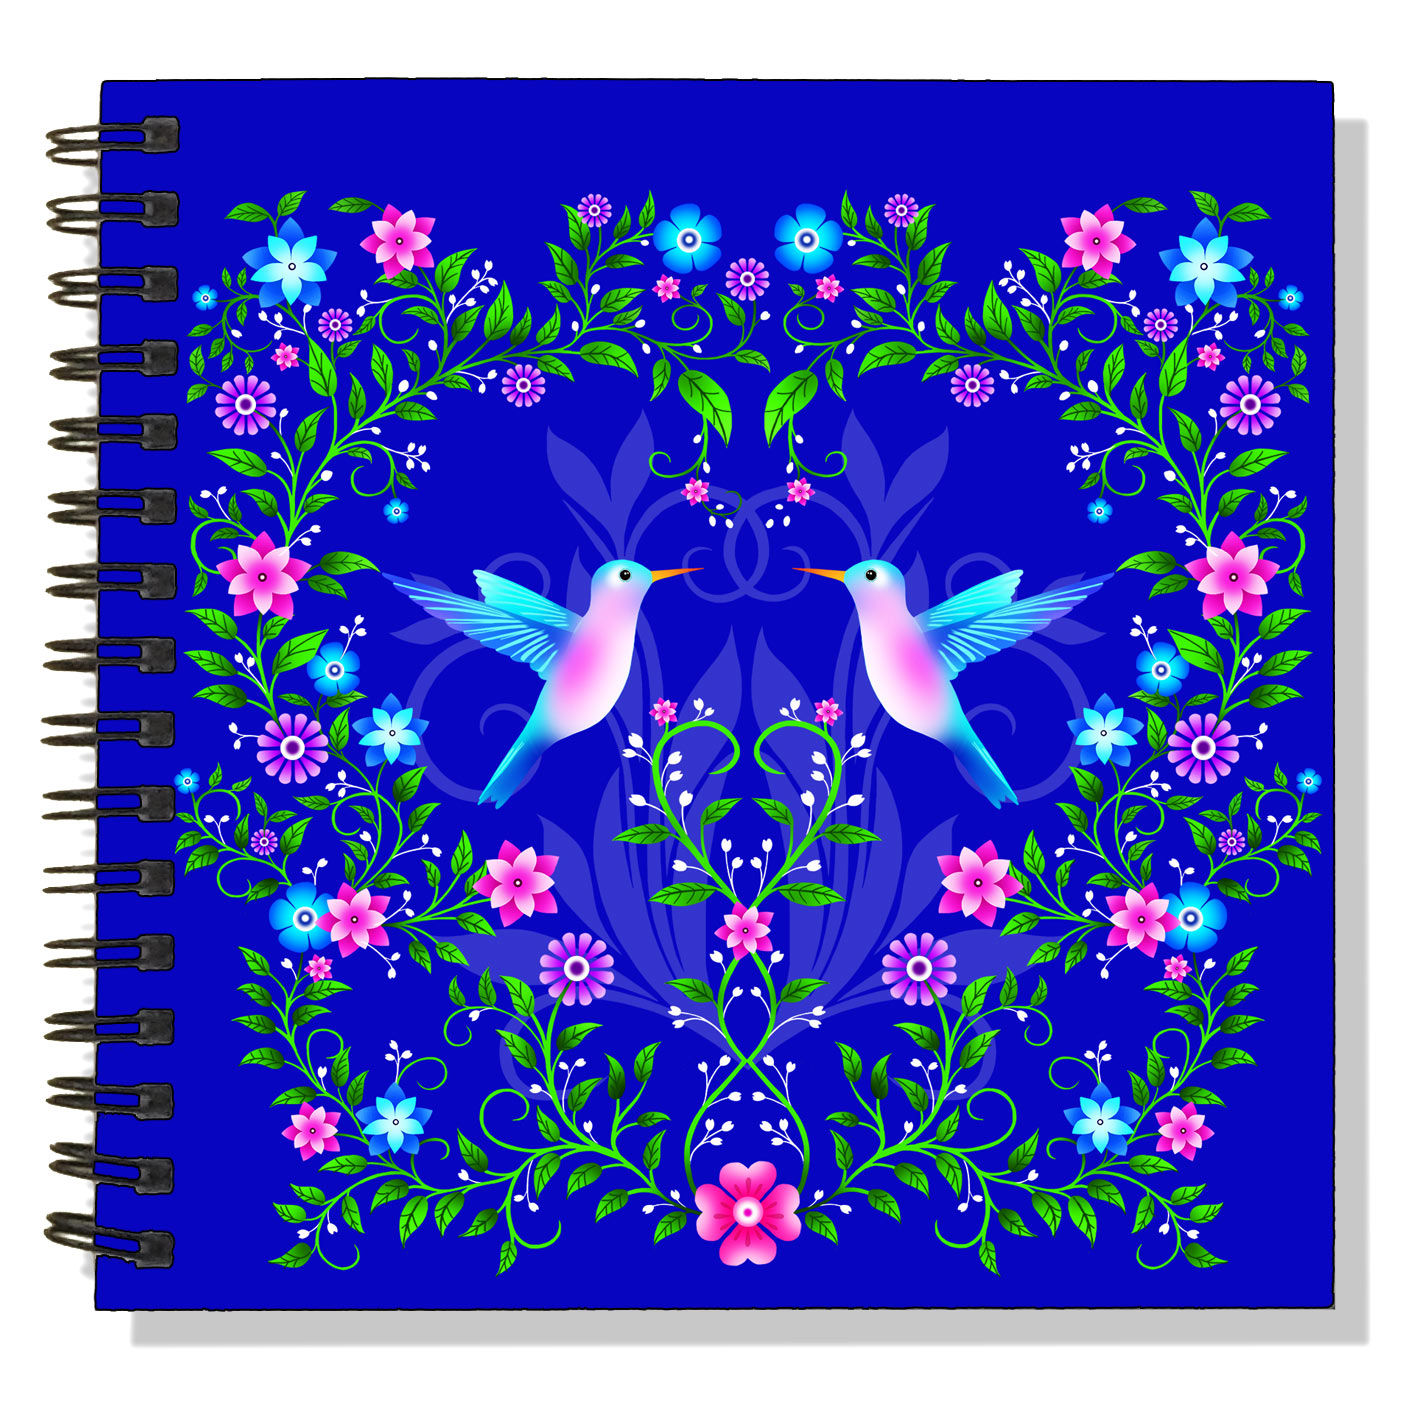 140mm Square Notebook